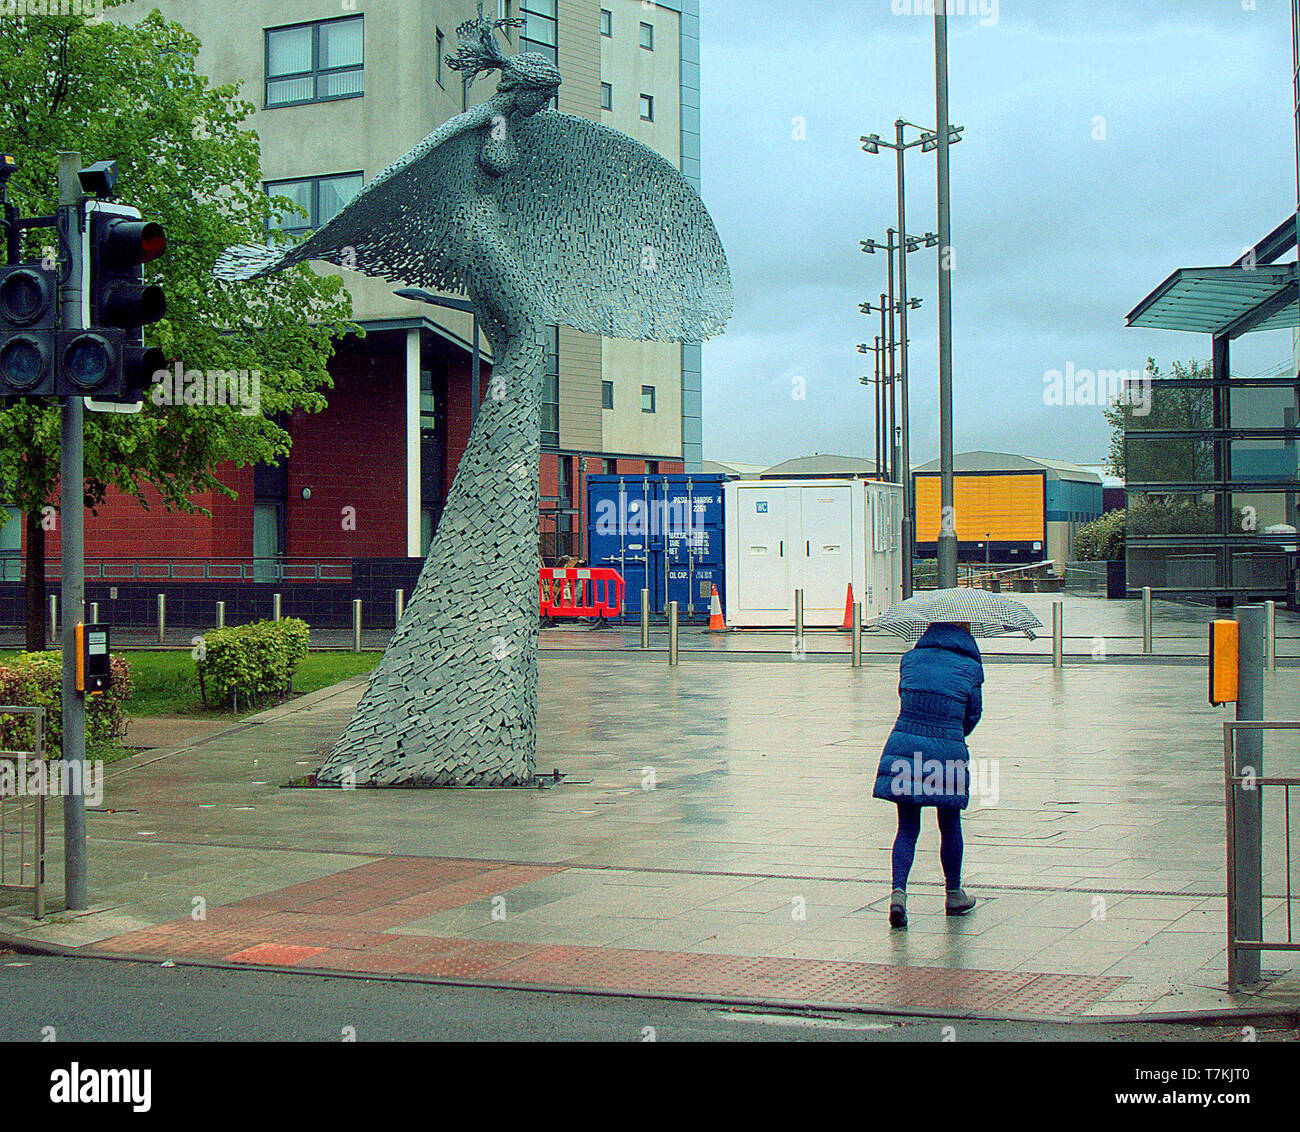 Glasgow, Scotland, UK, 8th May, 2019, UK Weather. Rain and cold in the city on a  dull day In front of the statue 'rise' a six-metre high sculpture featuring the head and body of a woman a stunning sight at Glasgow Harbour. . Credit Gerard Ferry/Alamy Live News - Stock Image